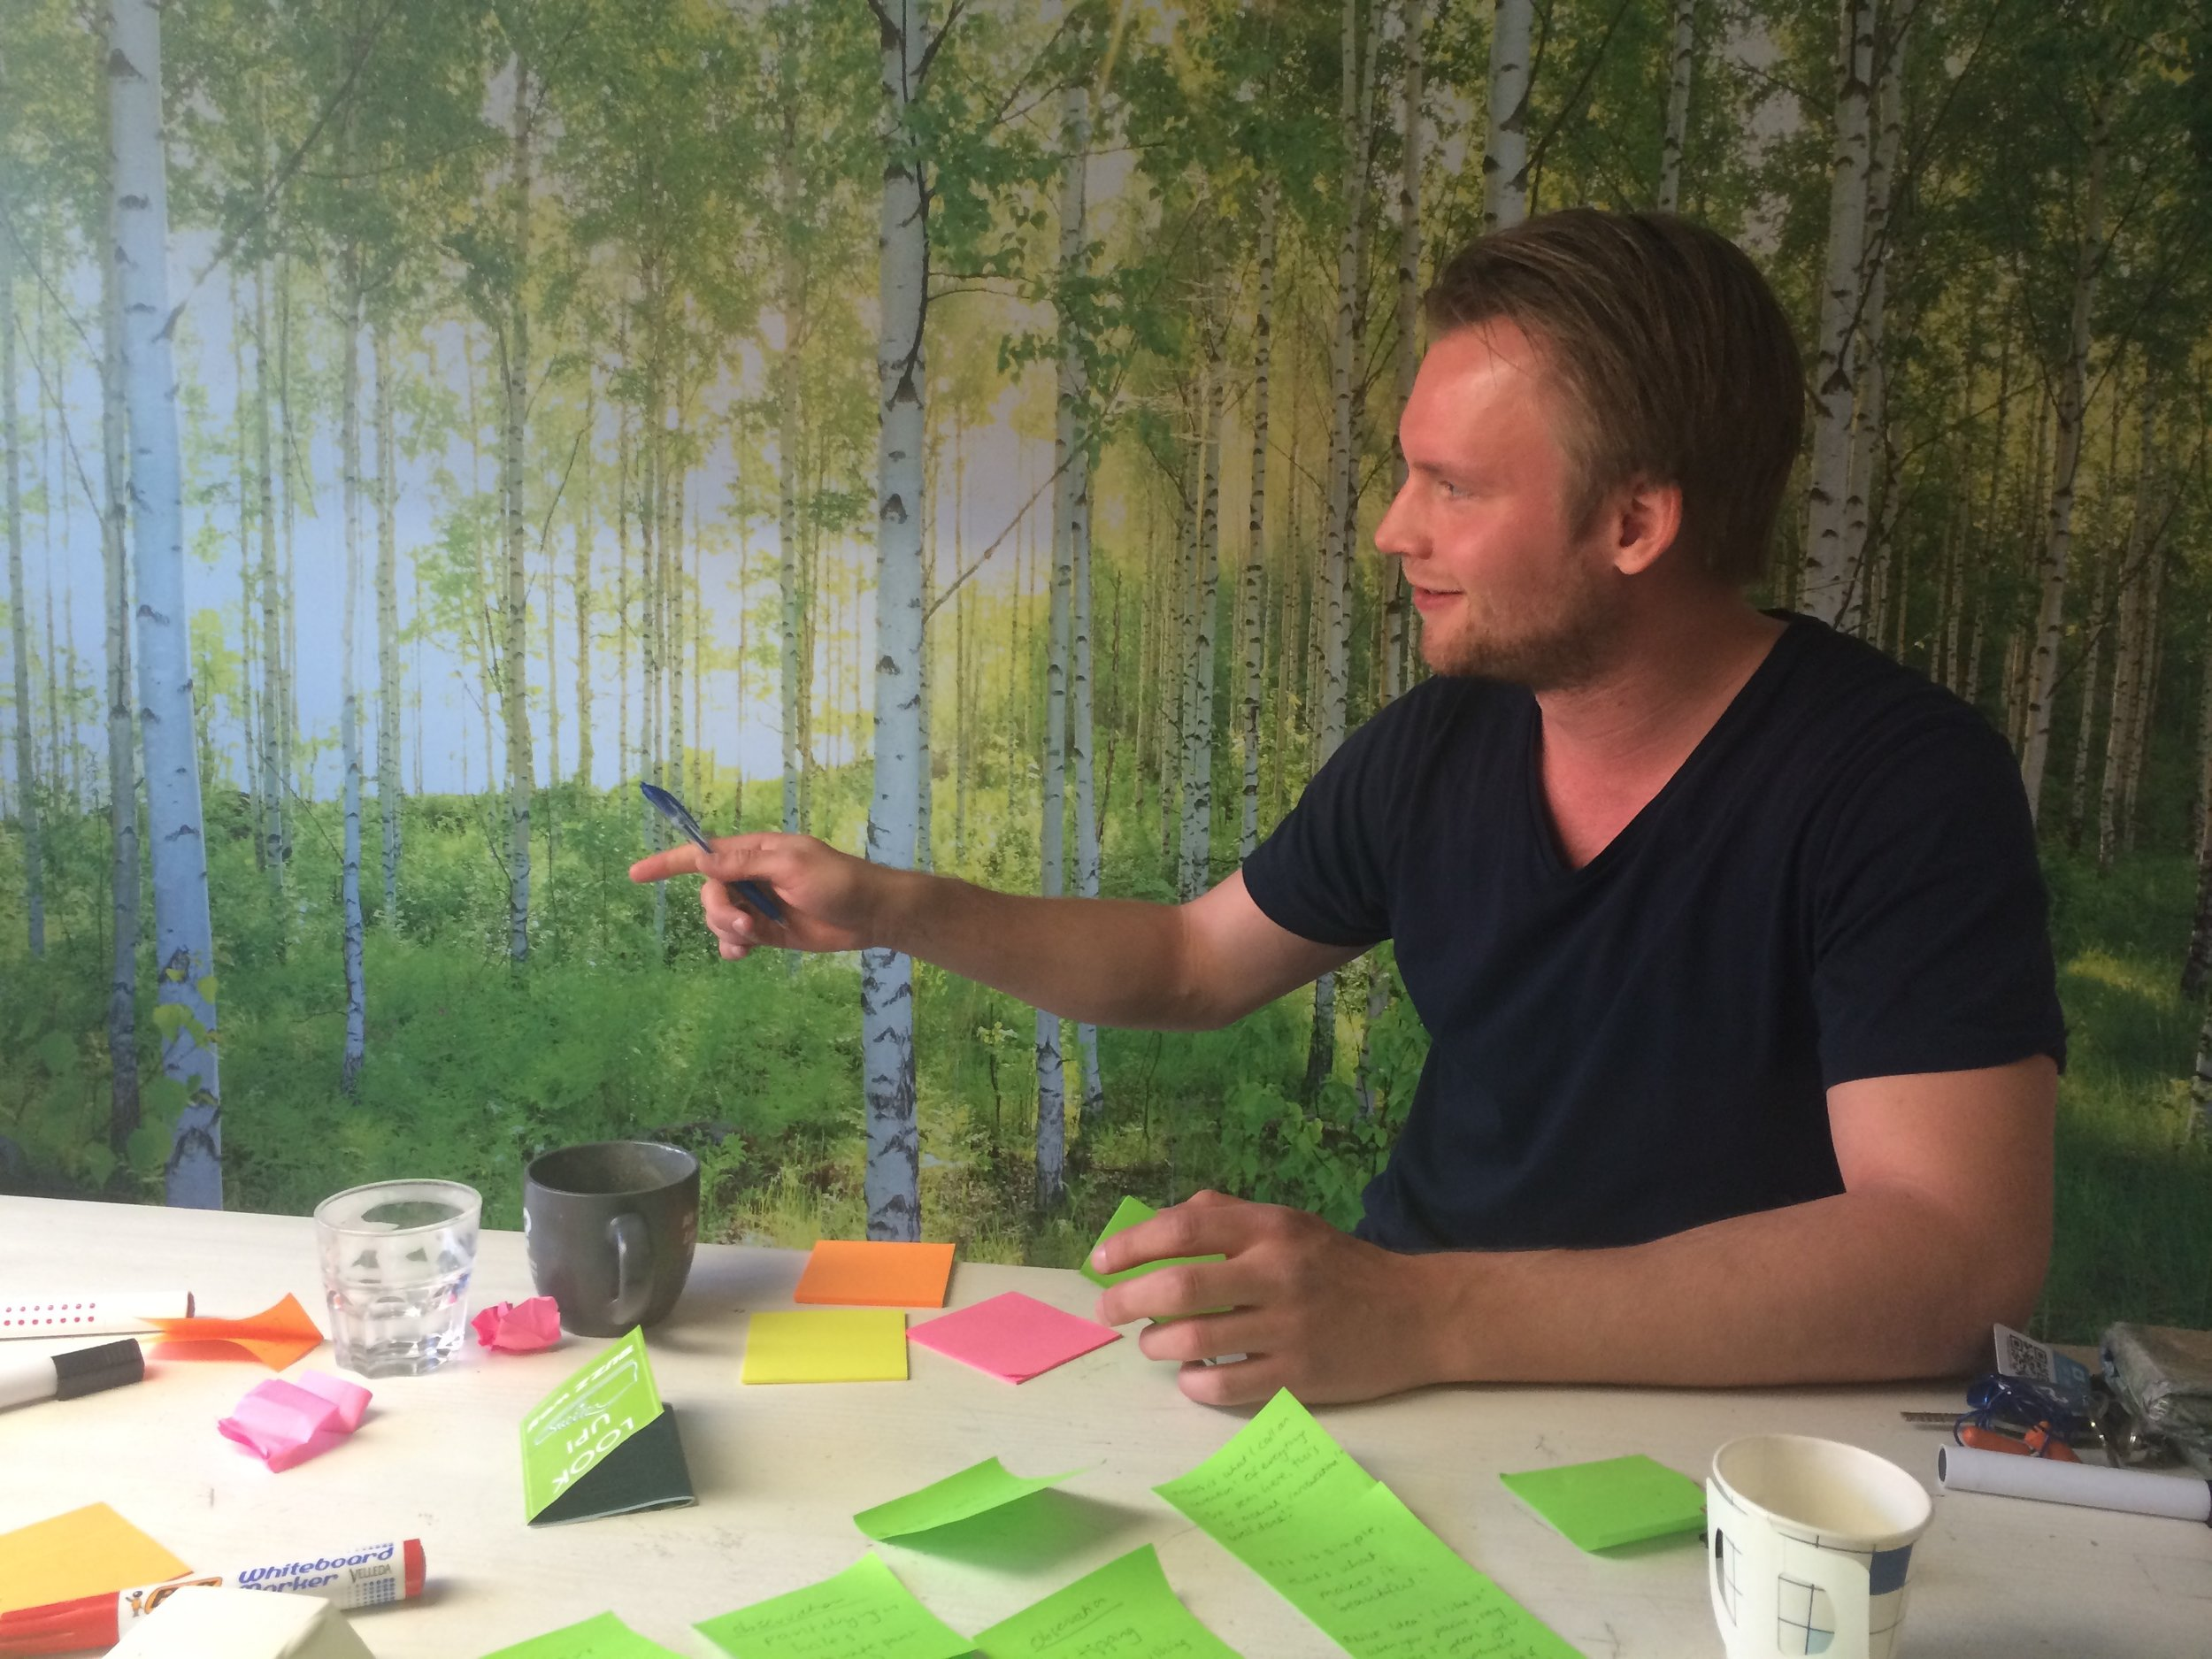 Ideation session at Aalto University, Helsinki